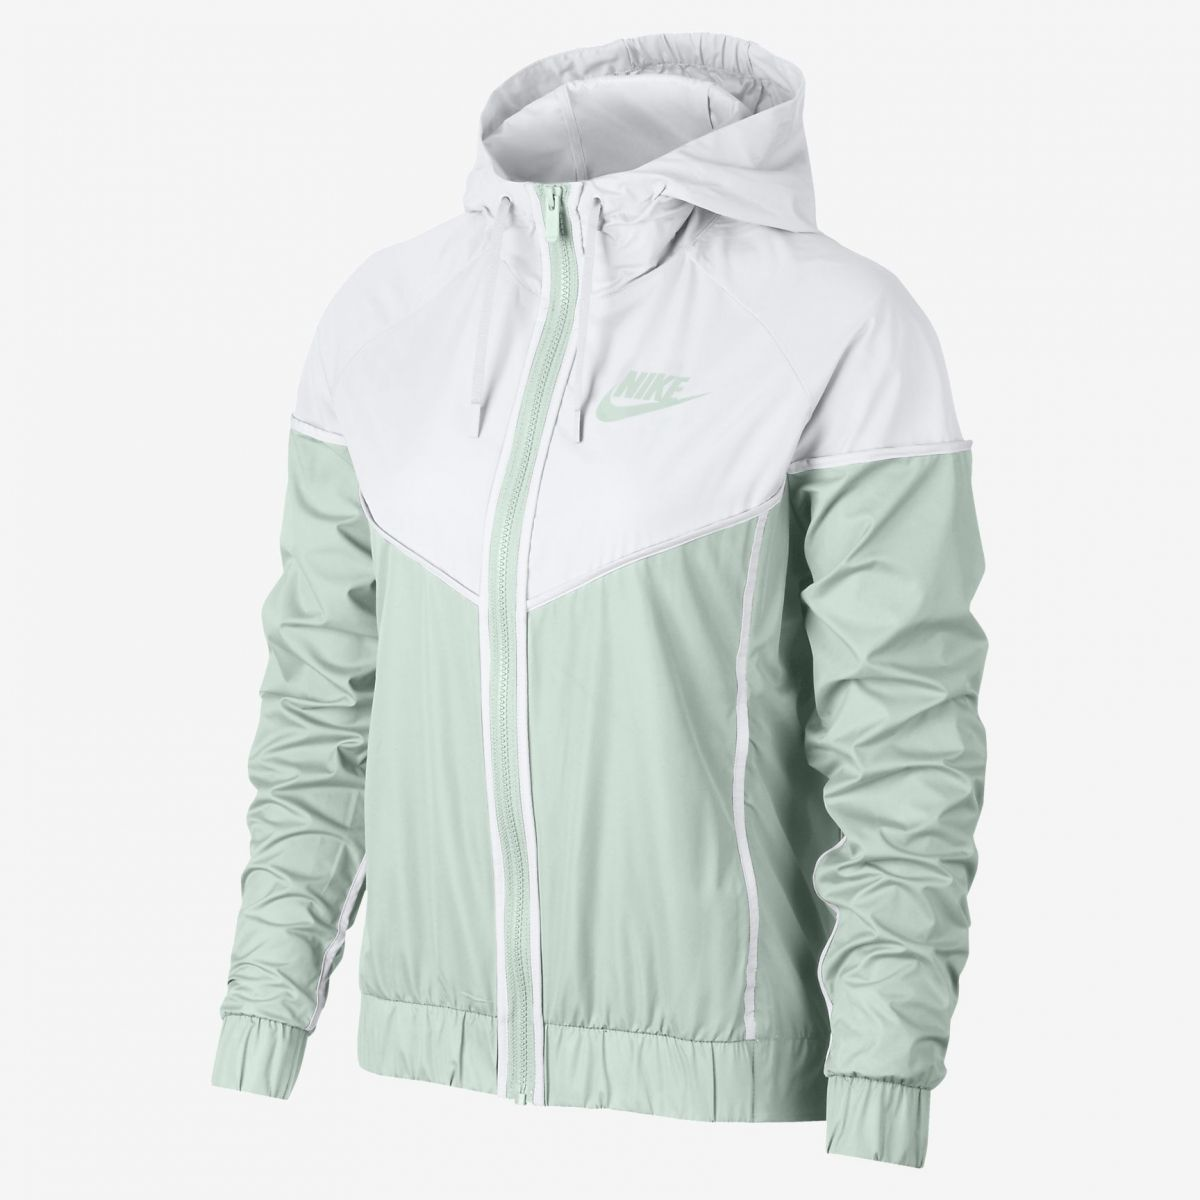 da014b17e8b0 Type Hoodies Nike Wmns NSW Windrunner Jacket